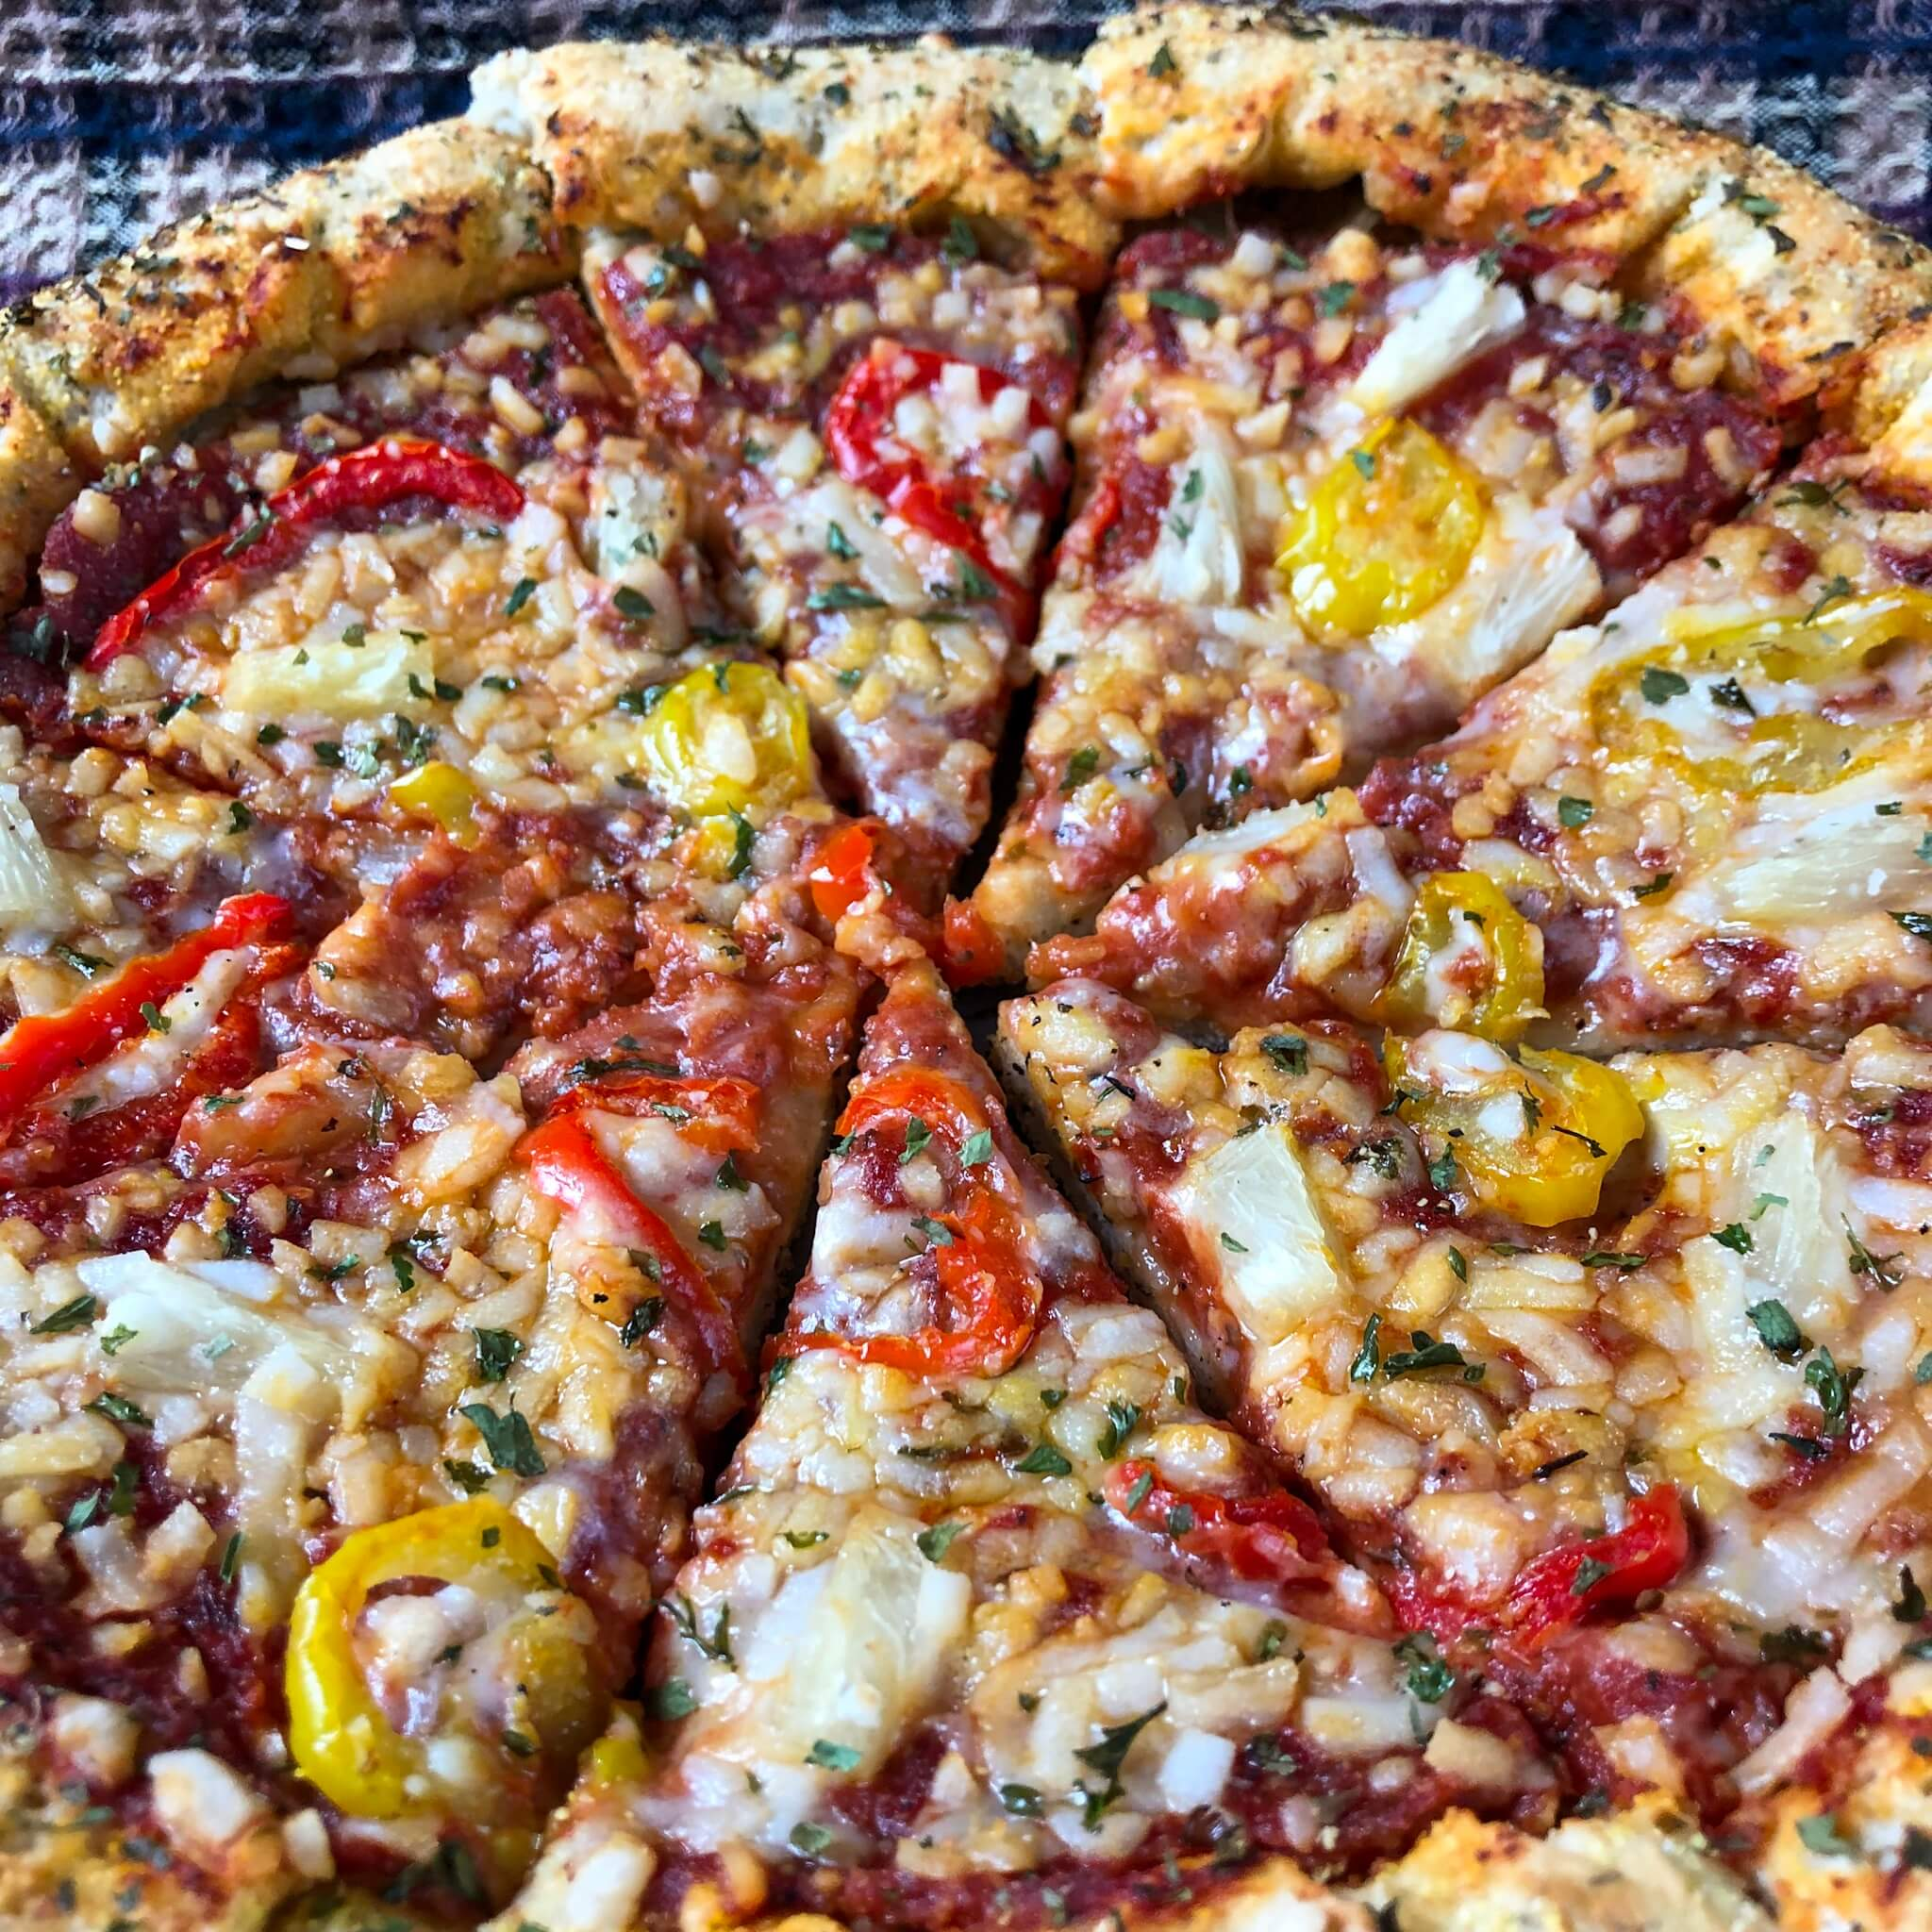 upclose vegan stuffed crust pizza